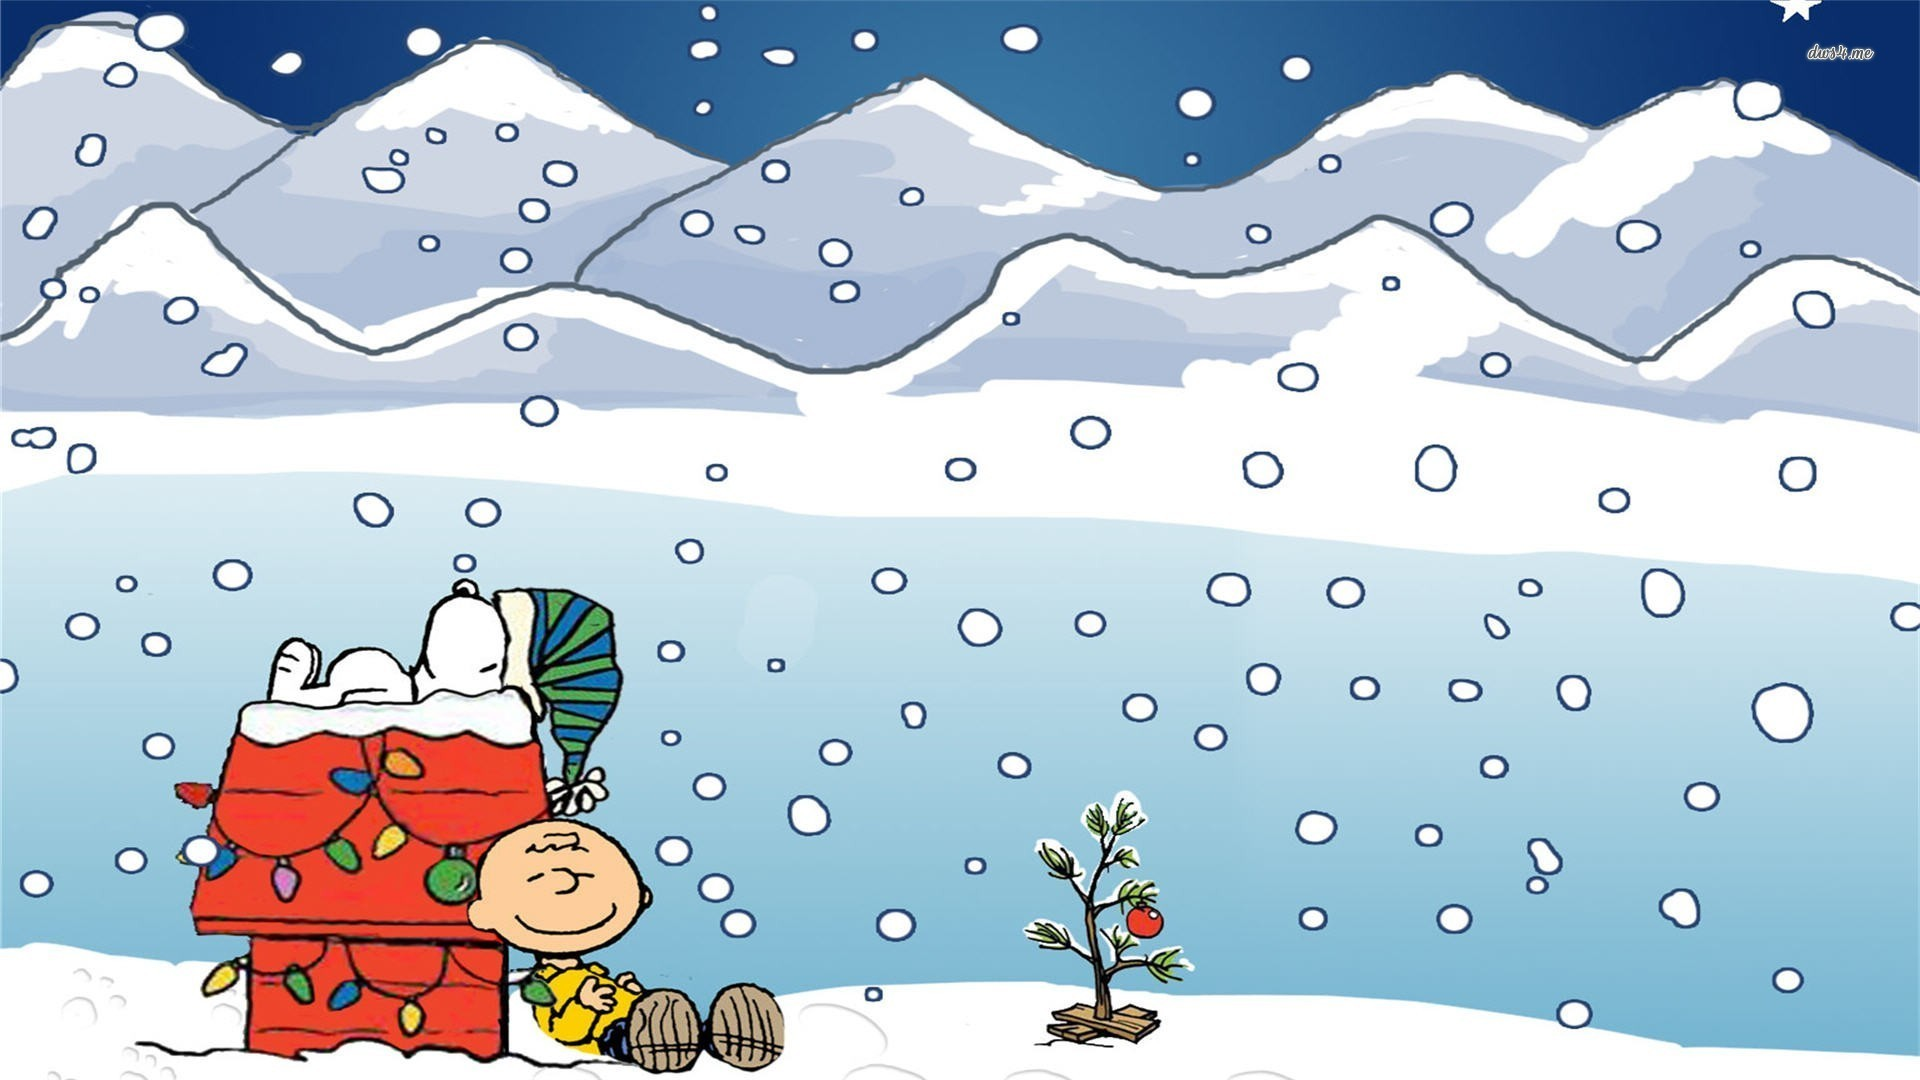 Charlie brown christmas wallpaper 49 images 1920x1080 charlie brown and snoopy download cartoon wallpaper for free voltagebd Choice Image